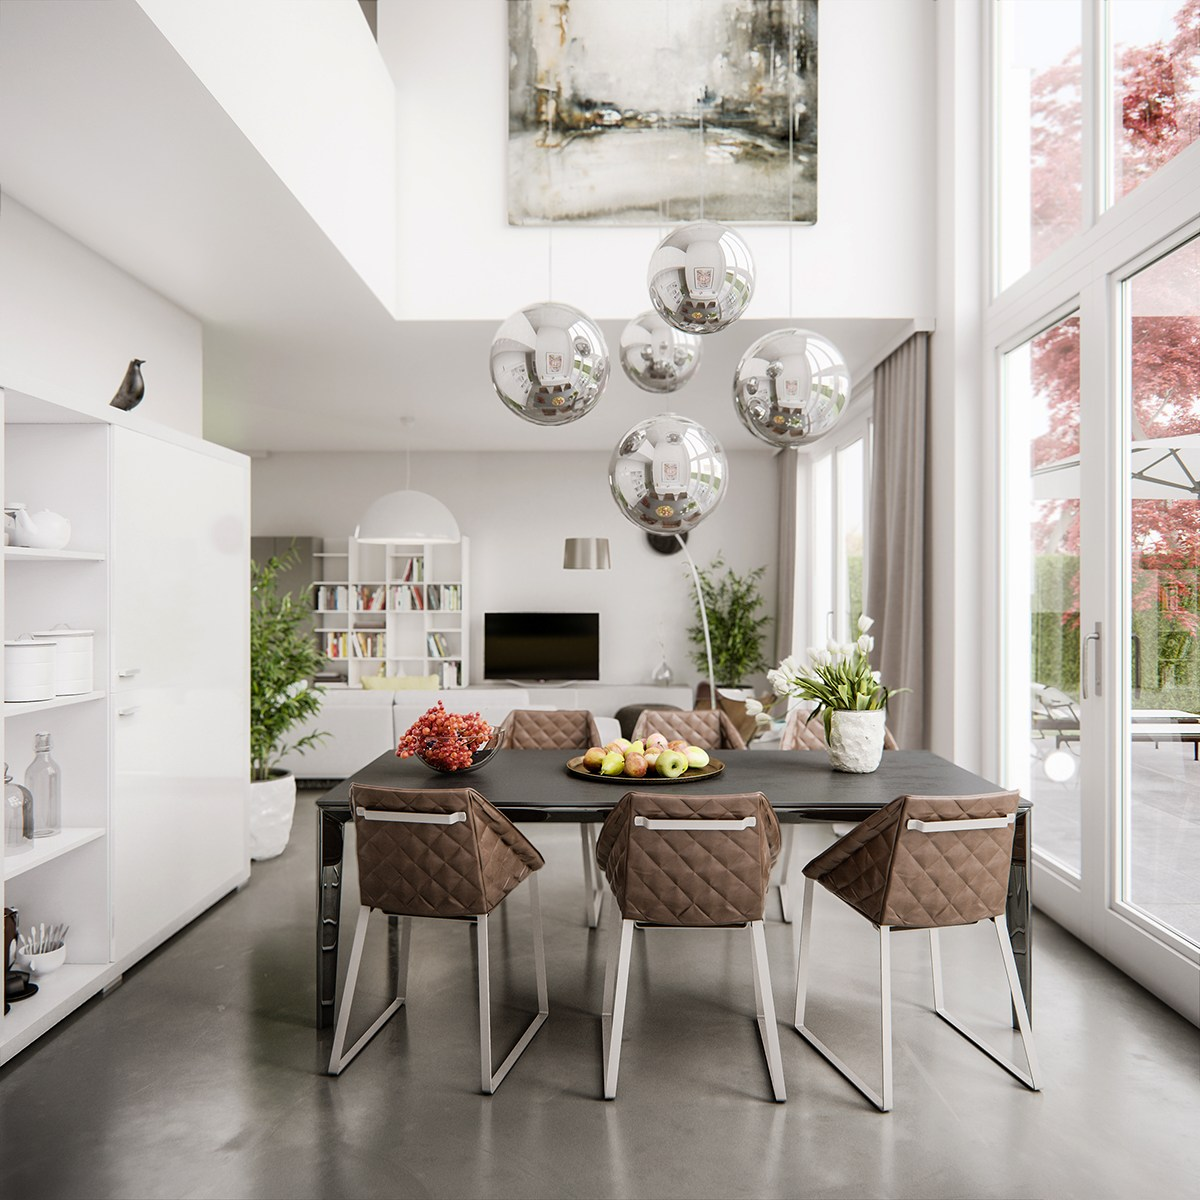 Living And Dining Room: 5 Living Rooms That Demonstrate Stylish Modern Design Trends